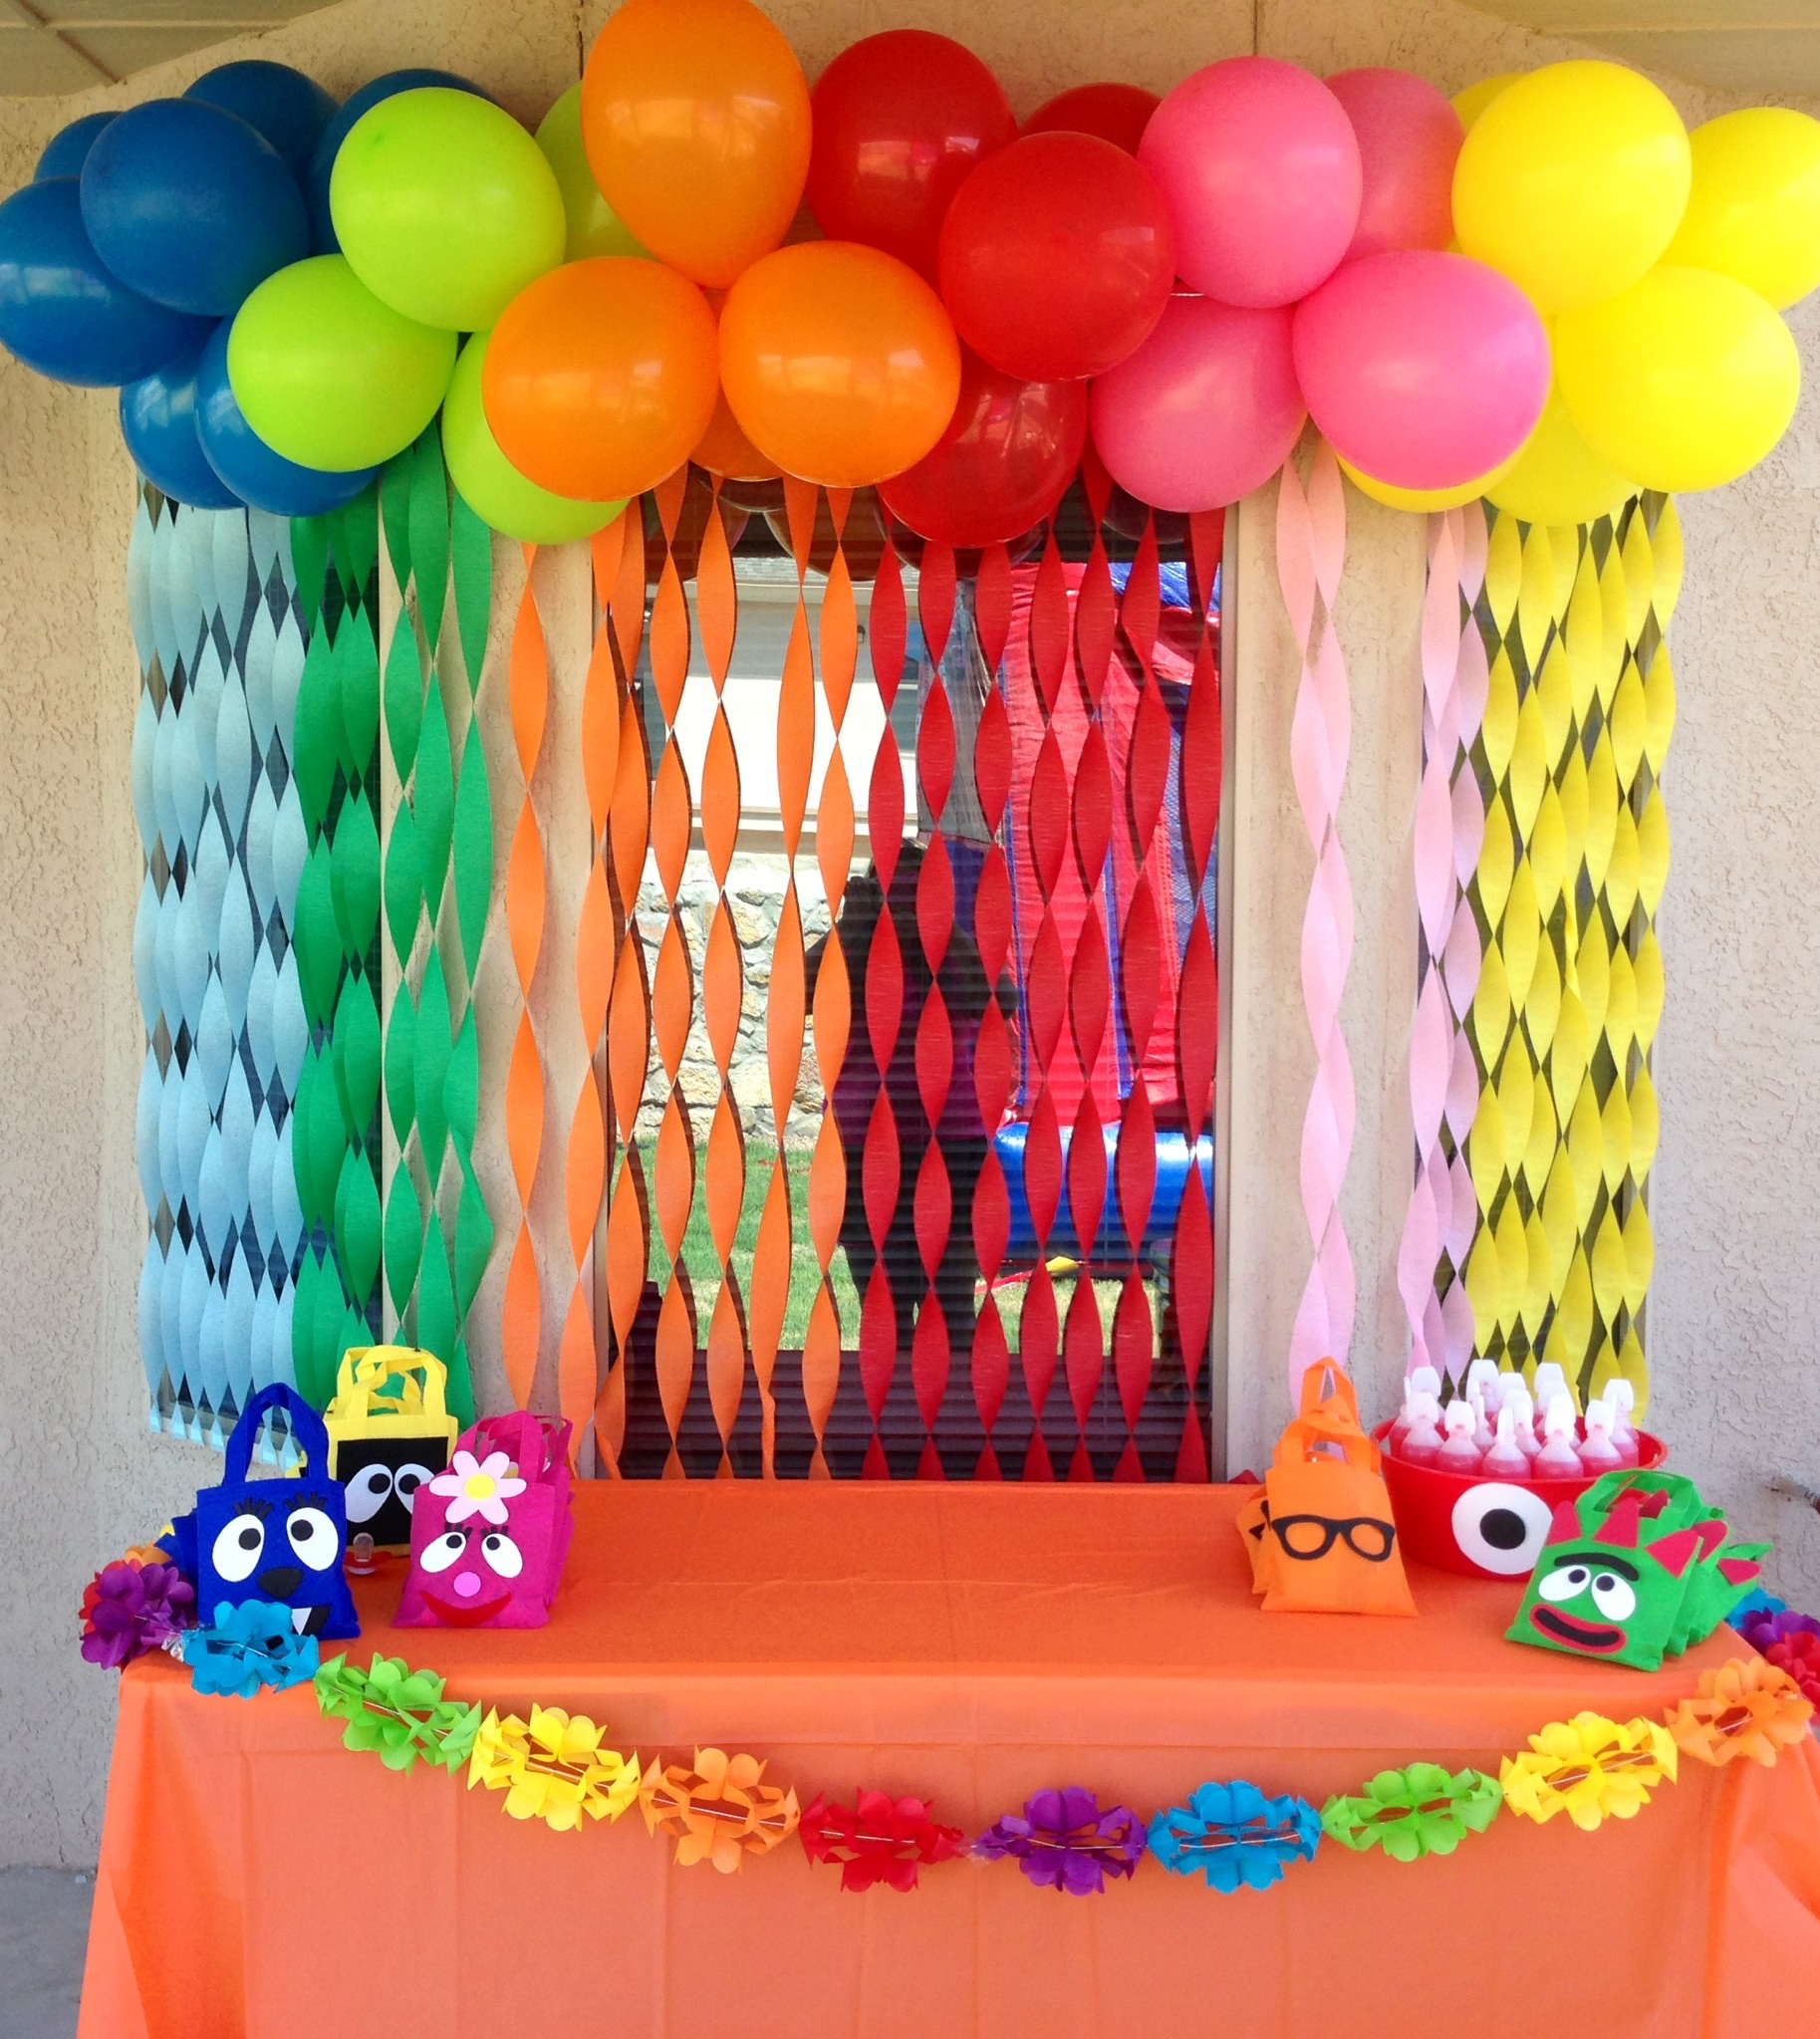 2nd birthday banners and balloons ; 025571344d3586288cba0544a84ef1c4